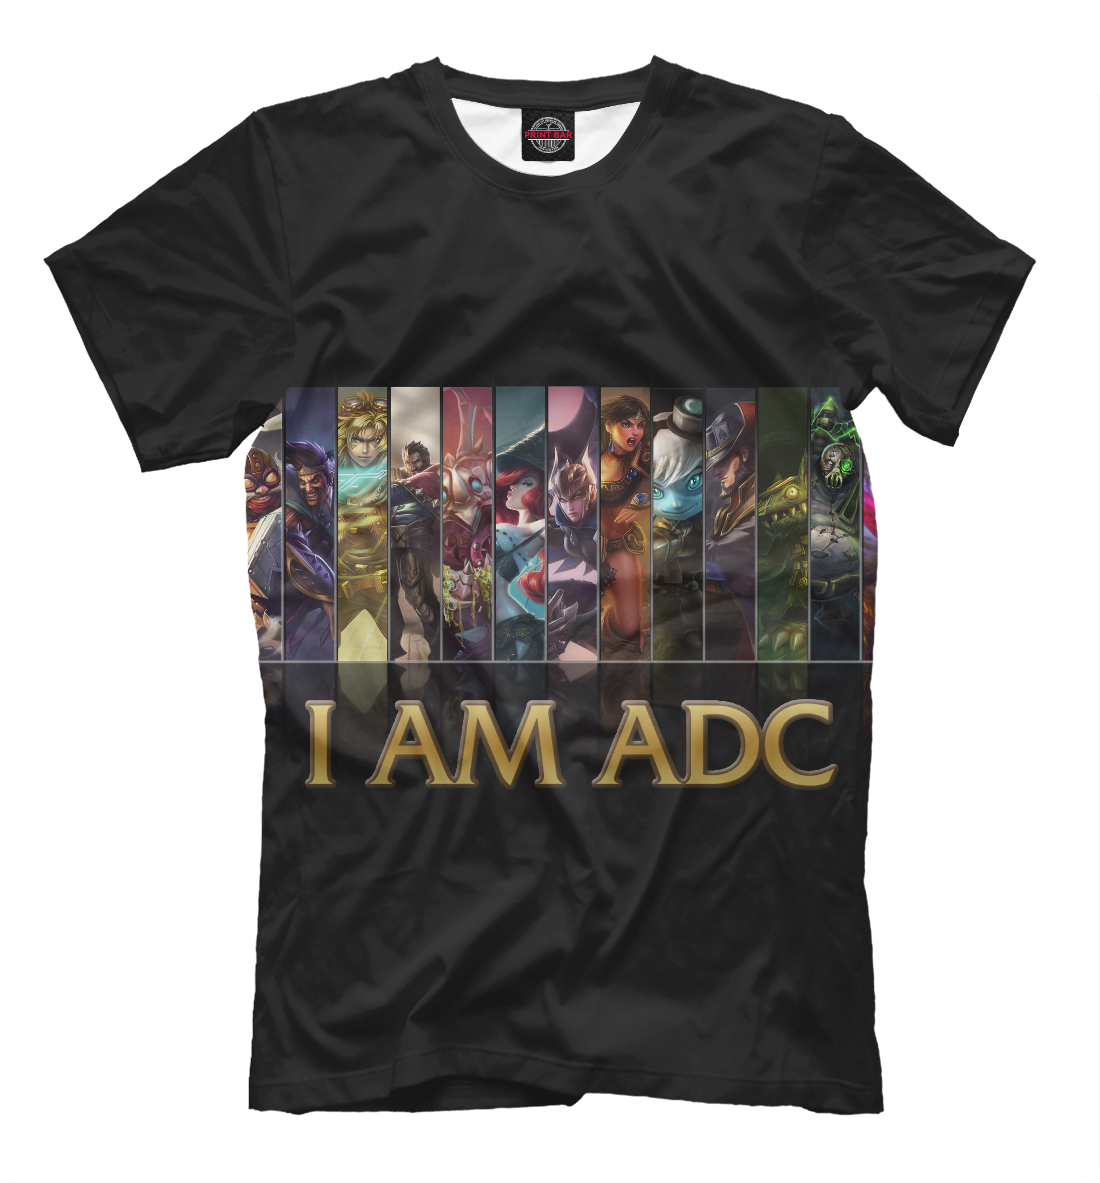 Купить I Am ADC, Printbar, Футболки, LOL-849297-fut-2